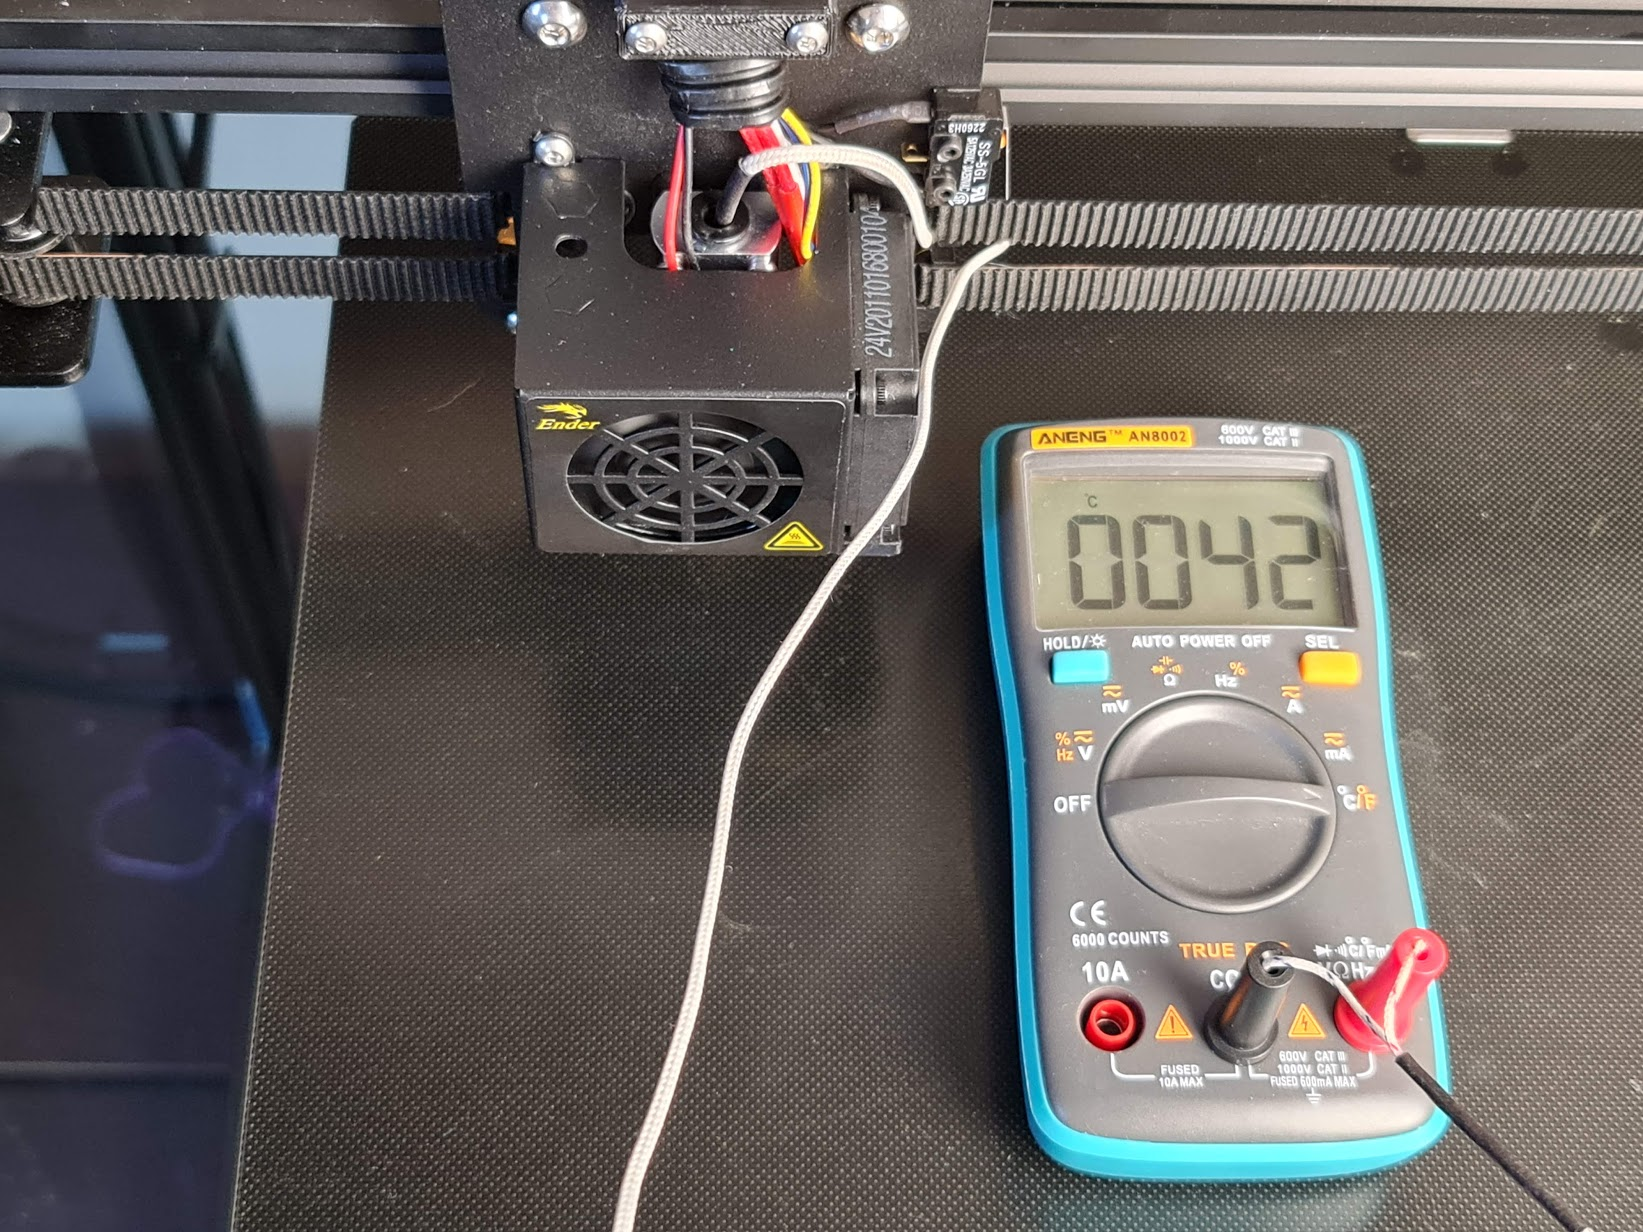 Trianglelab Spiral Hotend temperatures 1 | Trianglelab Spiral Tower Hotend Review